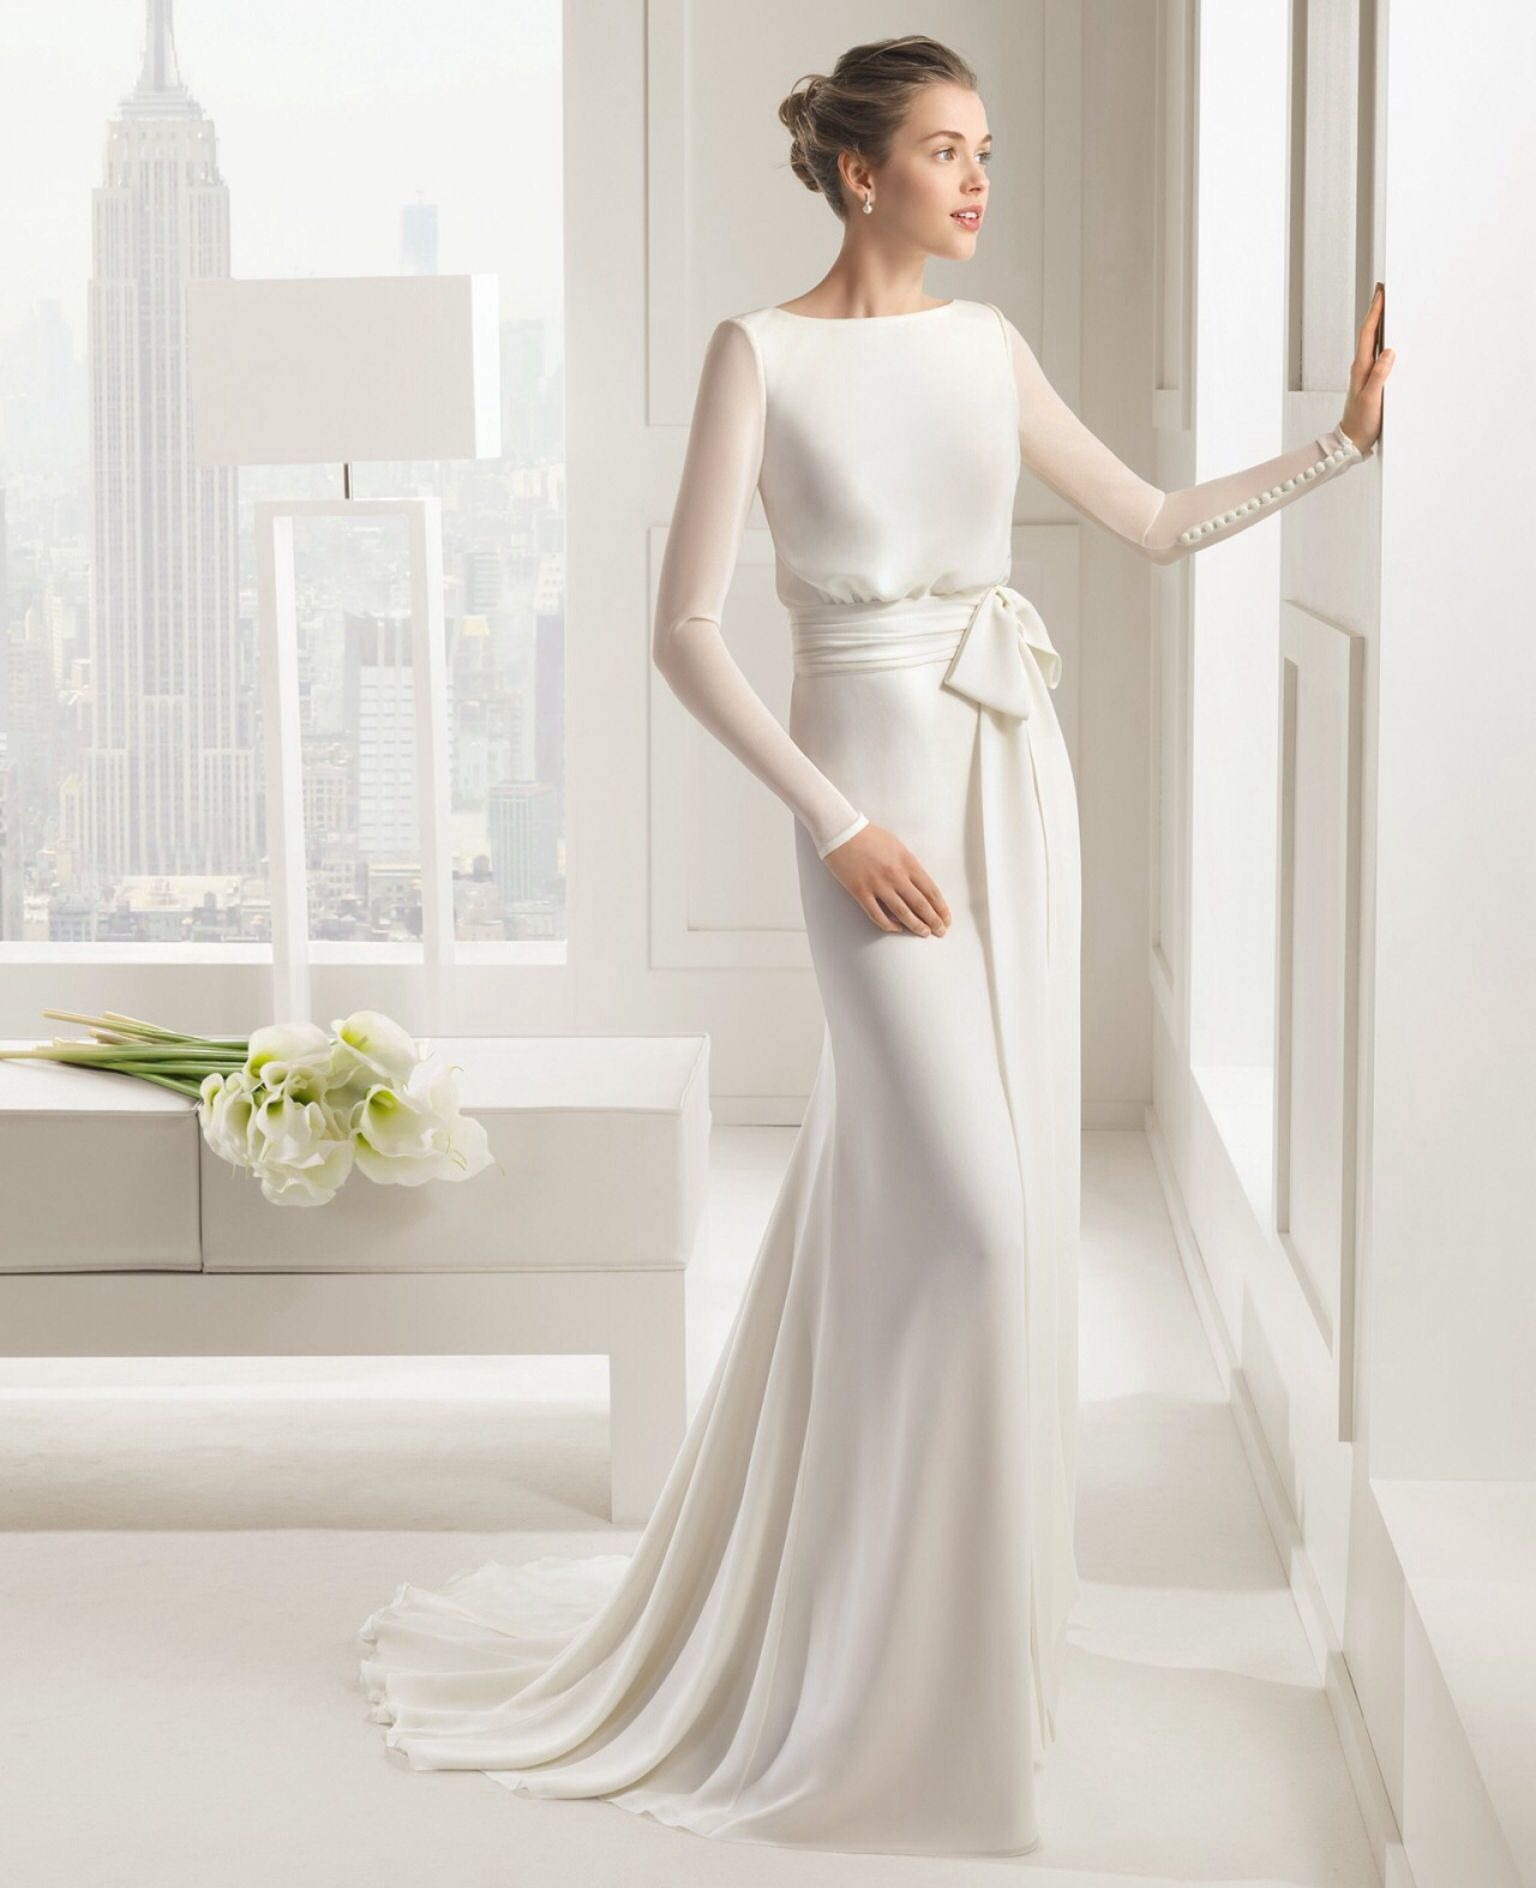 Different color wedding dresses  Make it shorter maybe in different color and can be an everyday